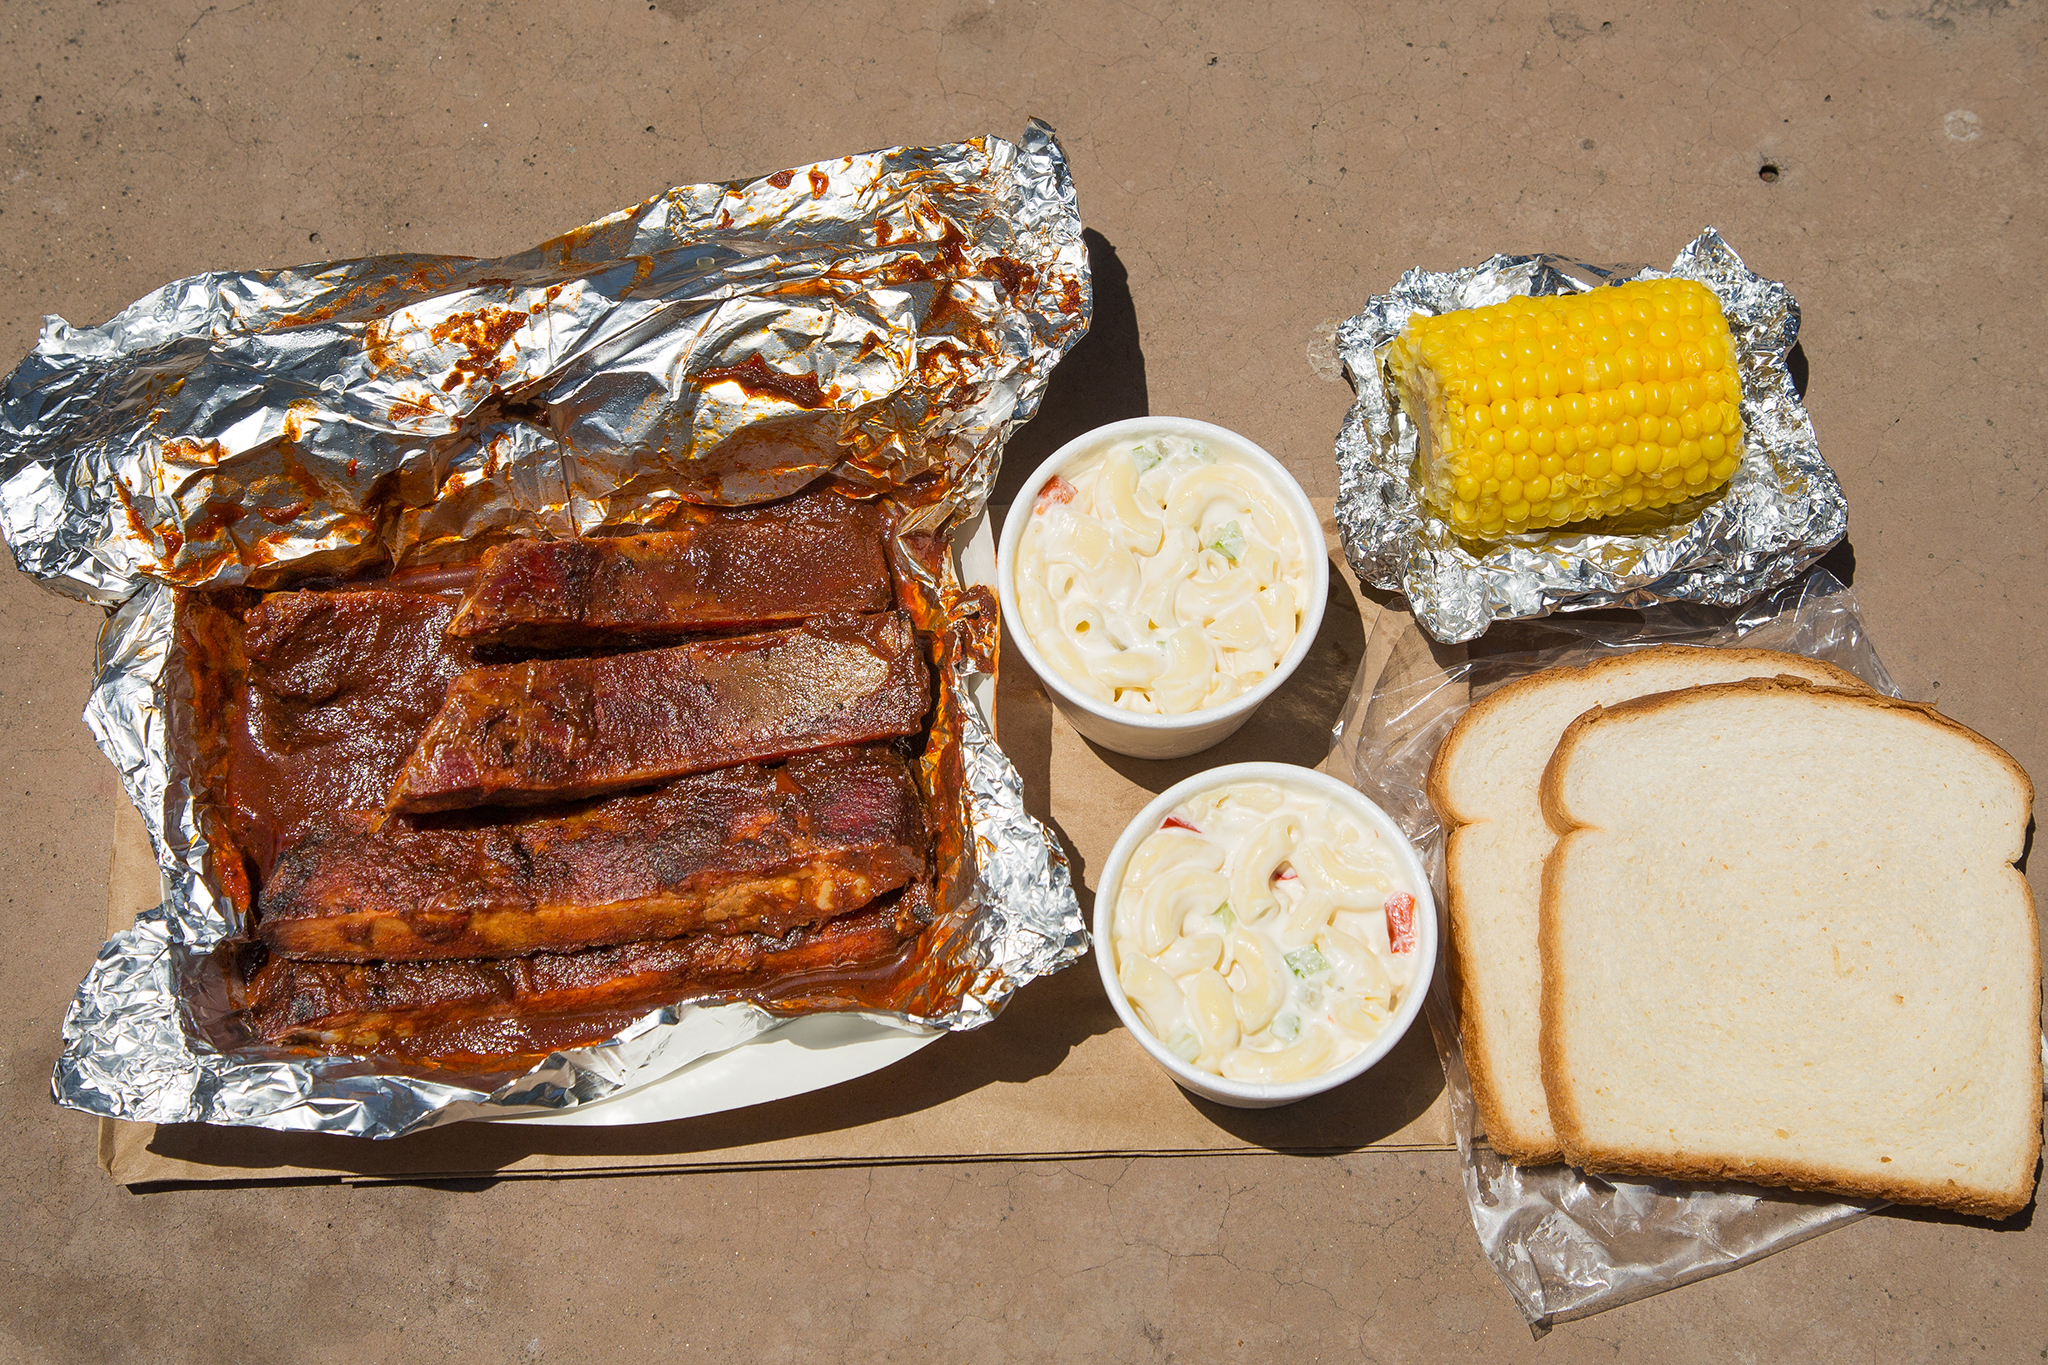 Pork ribs, macaroni salad, white bread, and corn on the cob at Phillip'sBBQ